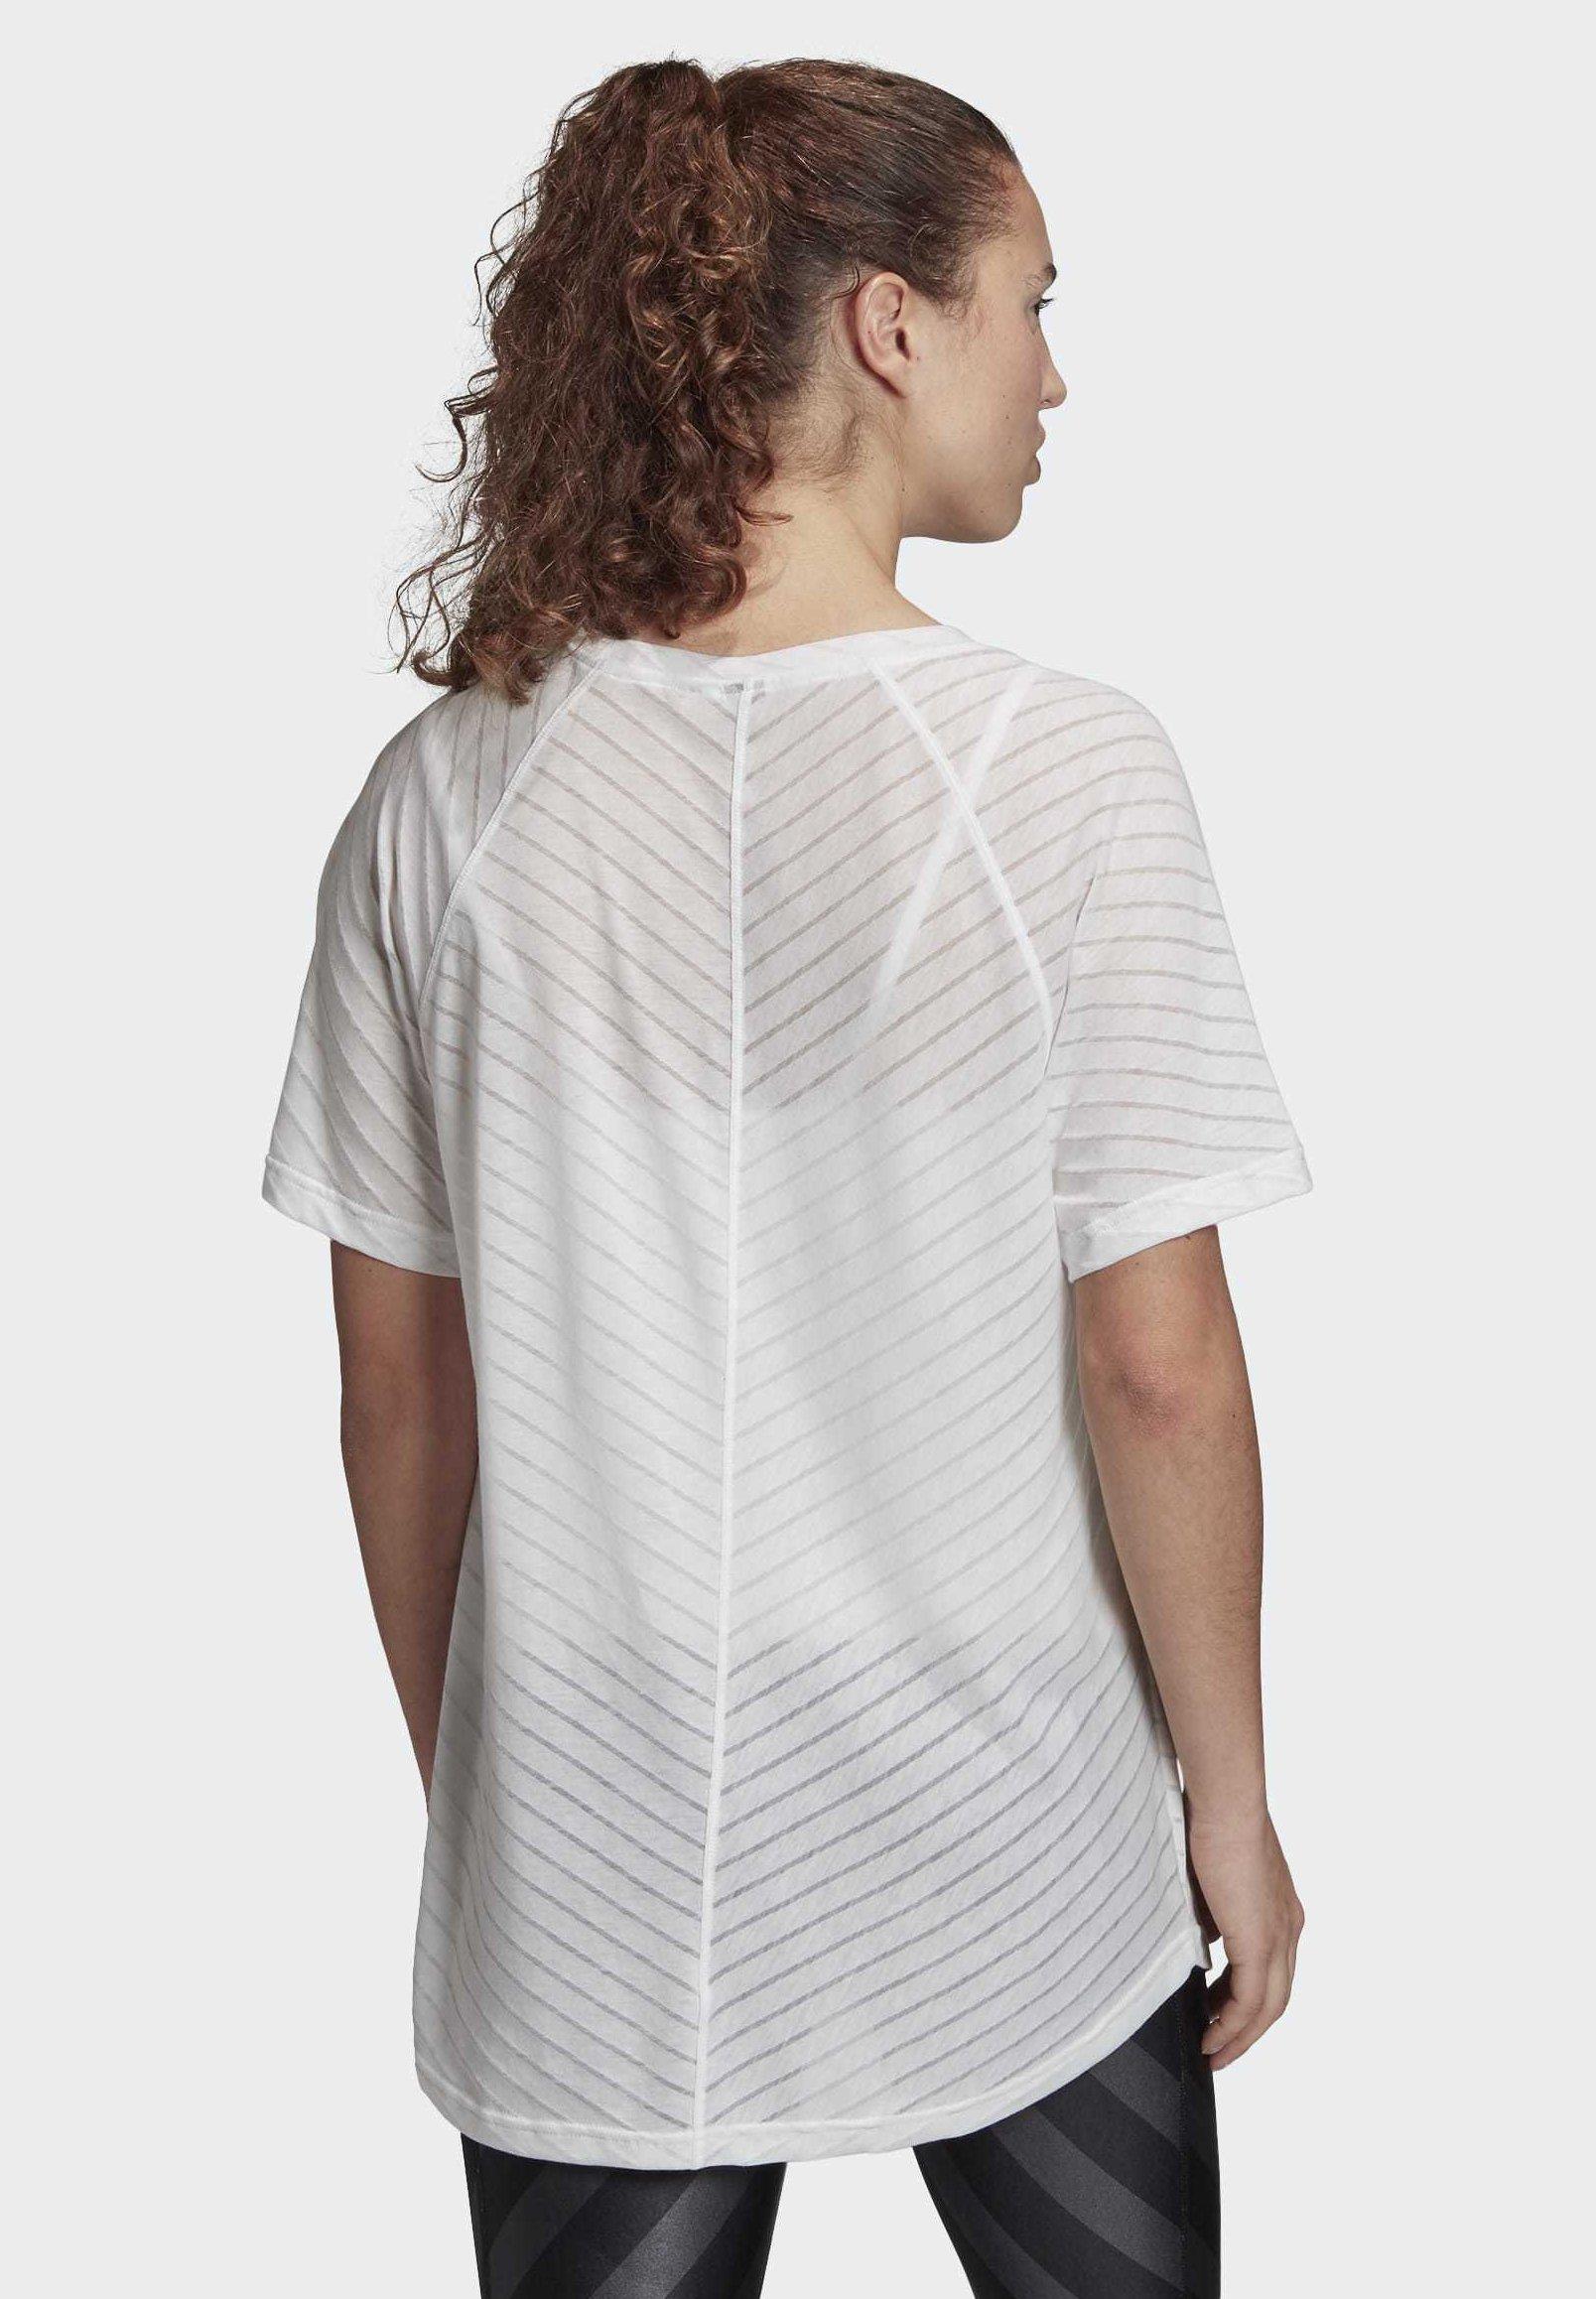 Adidas Performance Burnout Graphic T-shirt - Med Print White